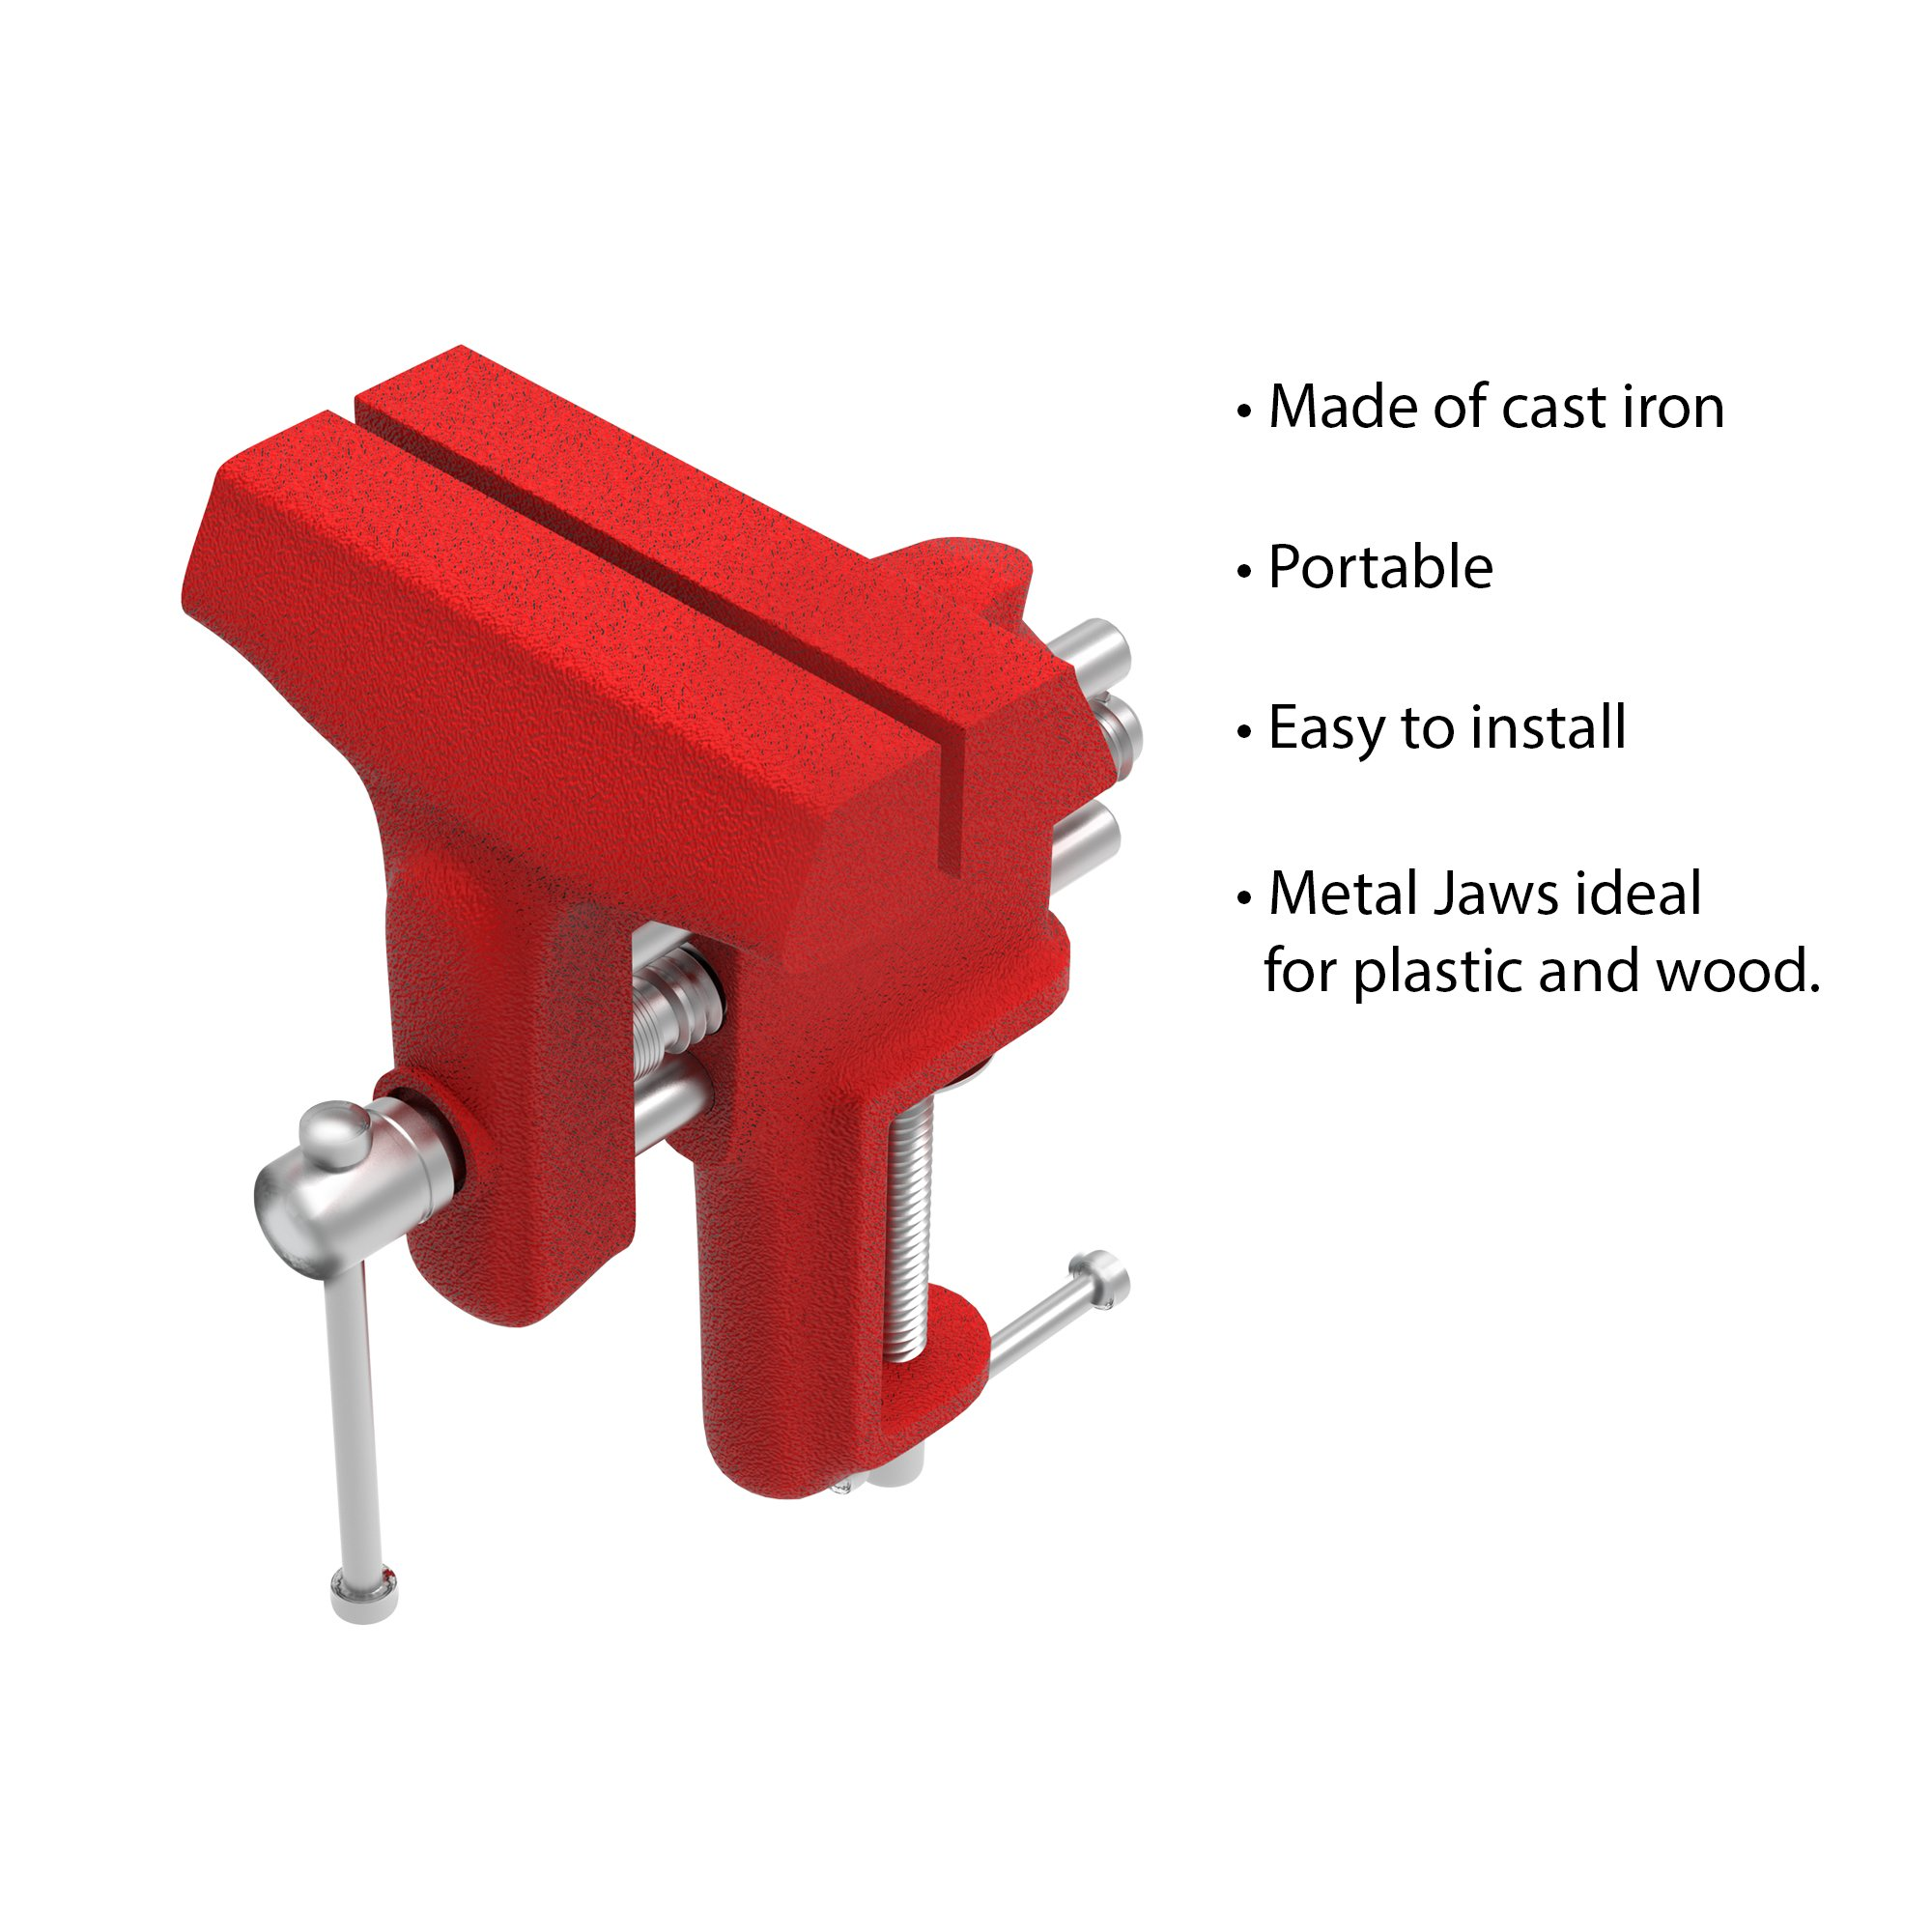 """Stalwart Clamp On Vise with 3 Inch """"V"""" Jaw for Table and Bench- Cast Iron Workbench Clamping Tool for Precision, DIY, Small Repairs and More by Stalwart (Image #5)"""